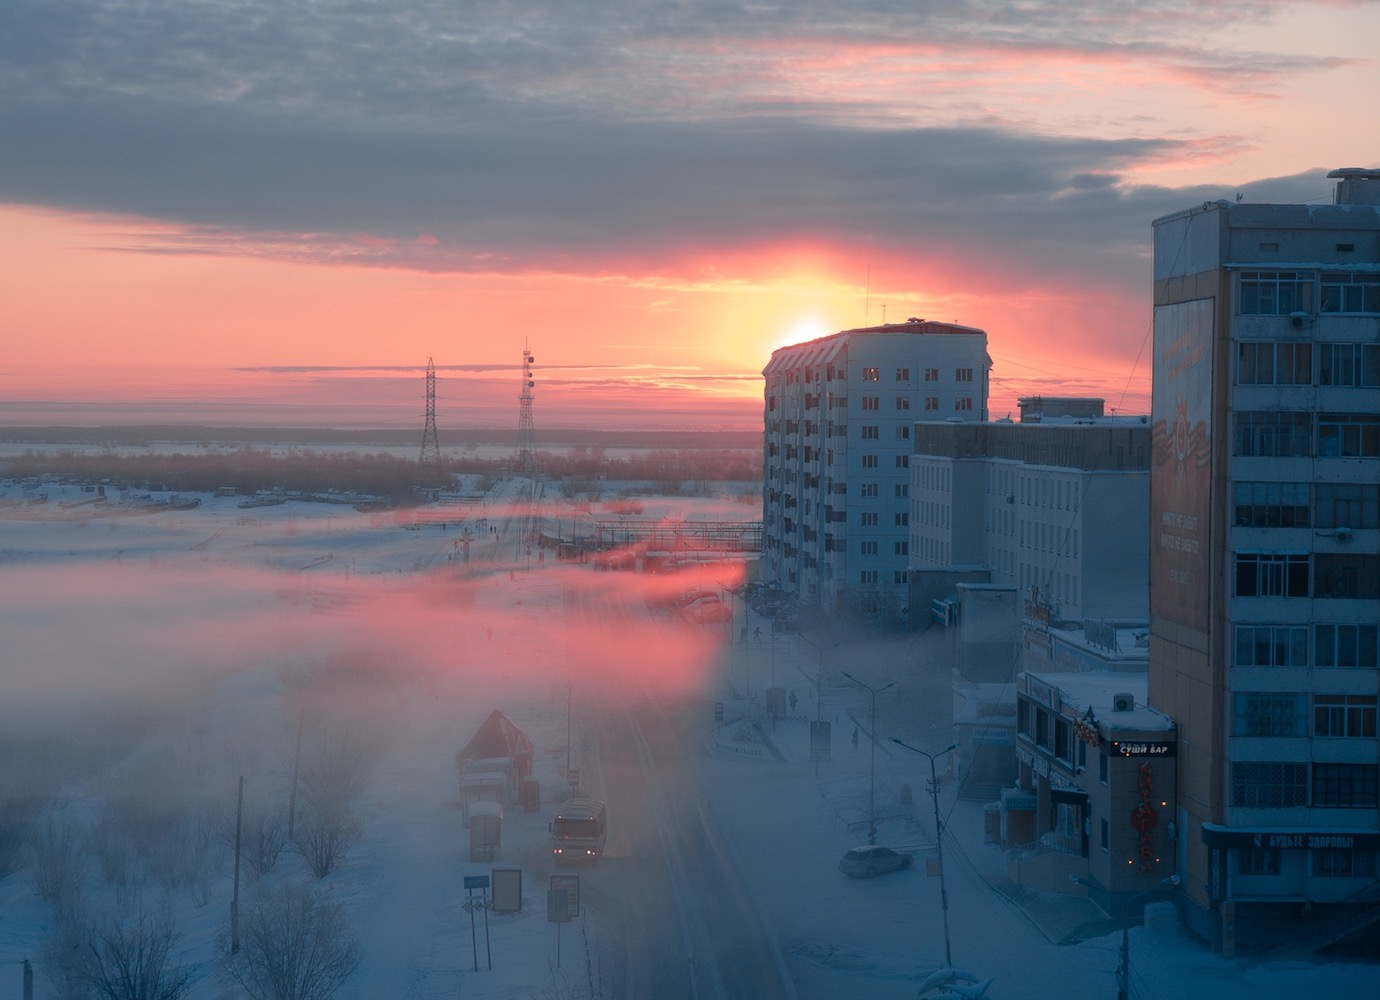 Sunset-tinted photos of Russia that find romantic beauty in the ordinary